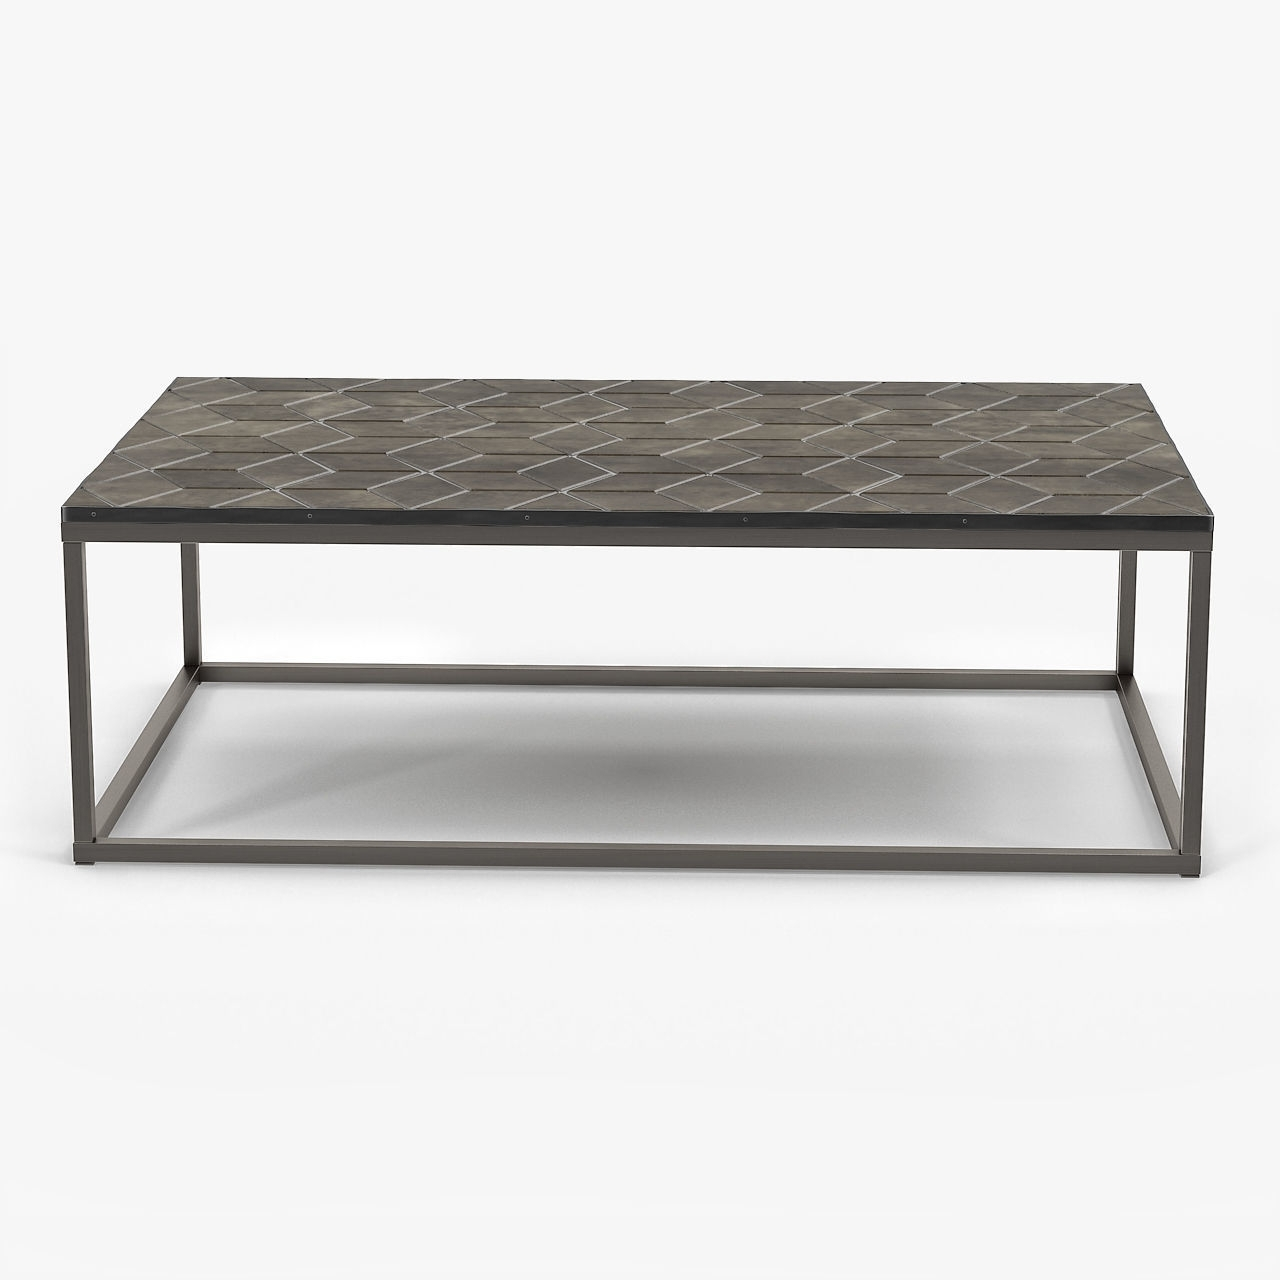 Amazing Parquet Coffee Table With Restoration Hardware Metall inside Parquet Coffee Tables (Image 4 of 30)